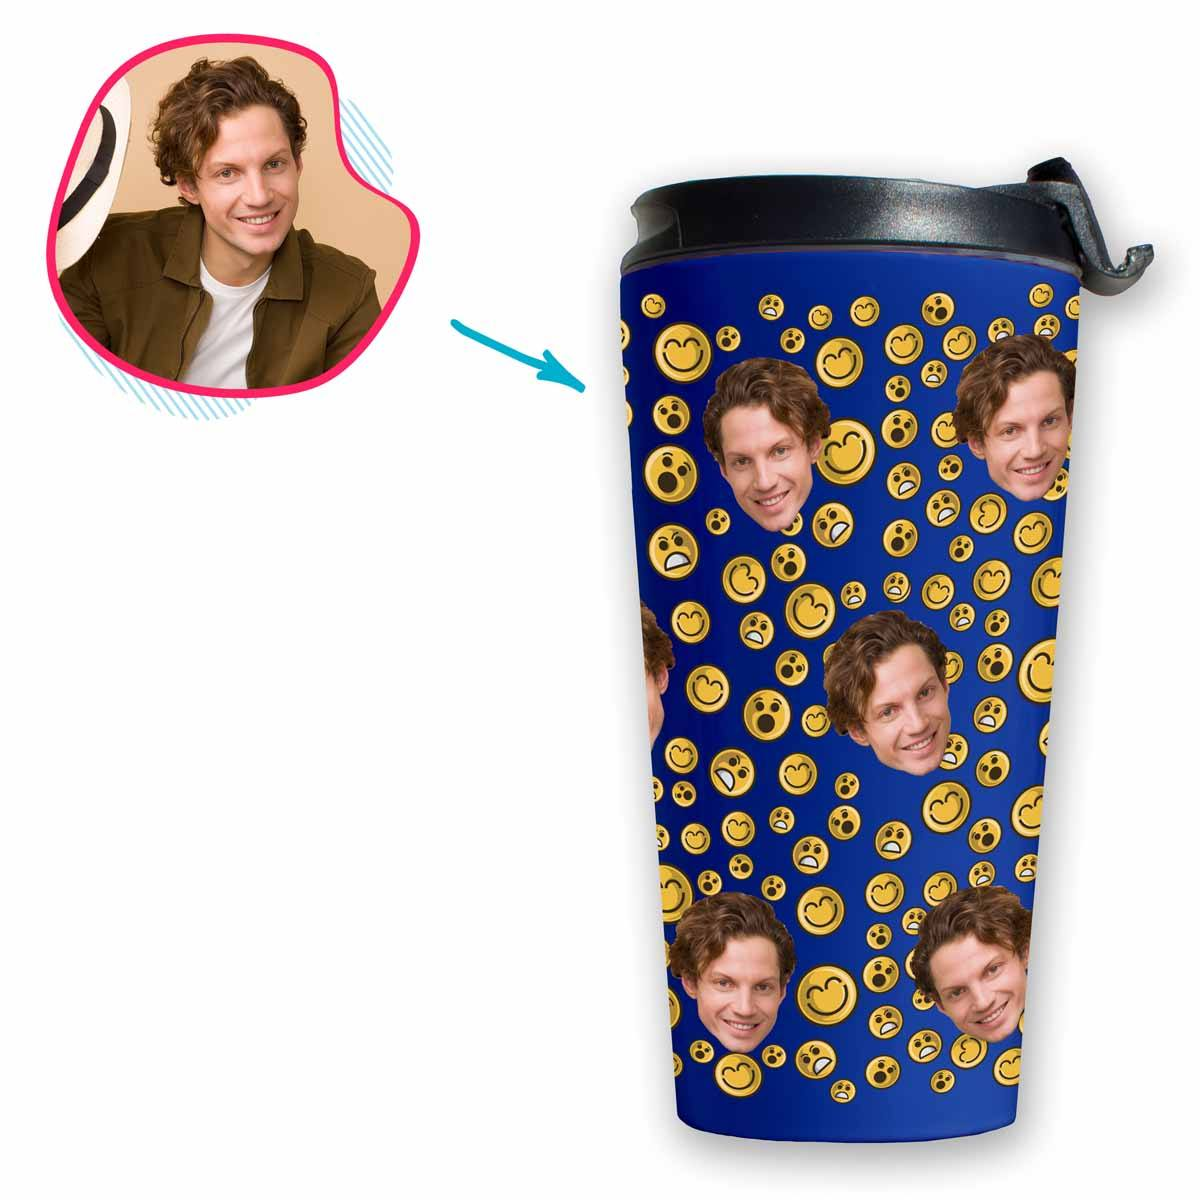 darkblue Smiles travel mug personalized with photo of face printed on it